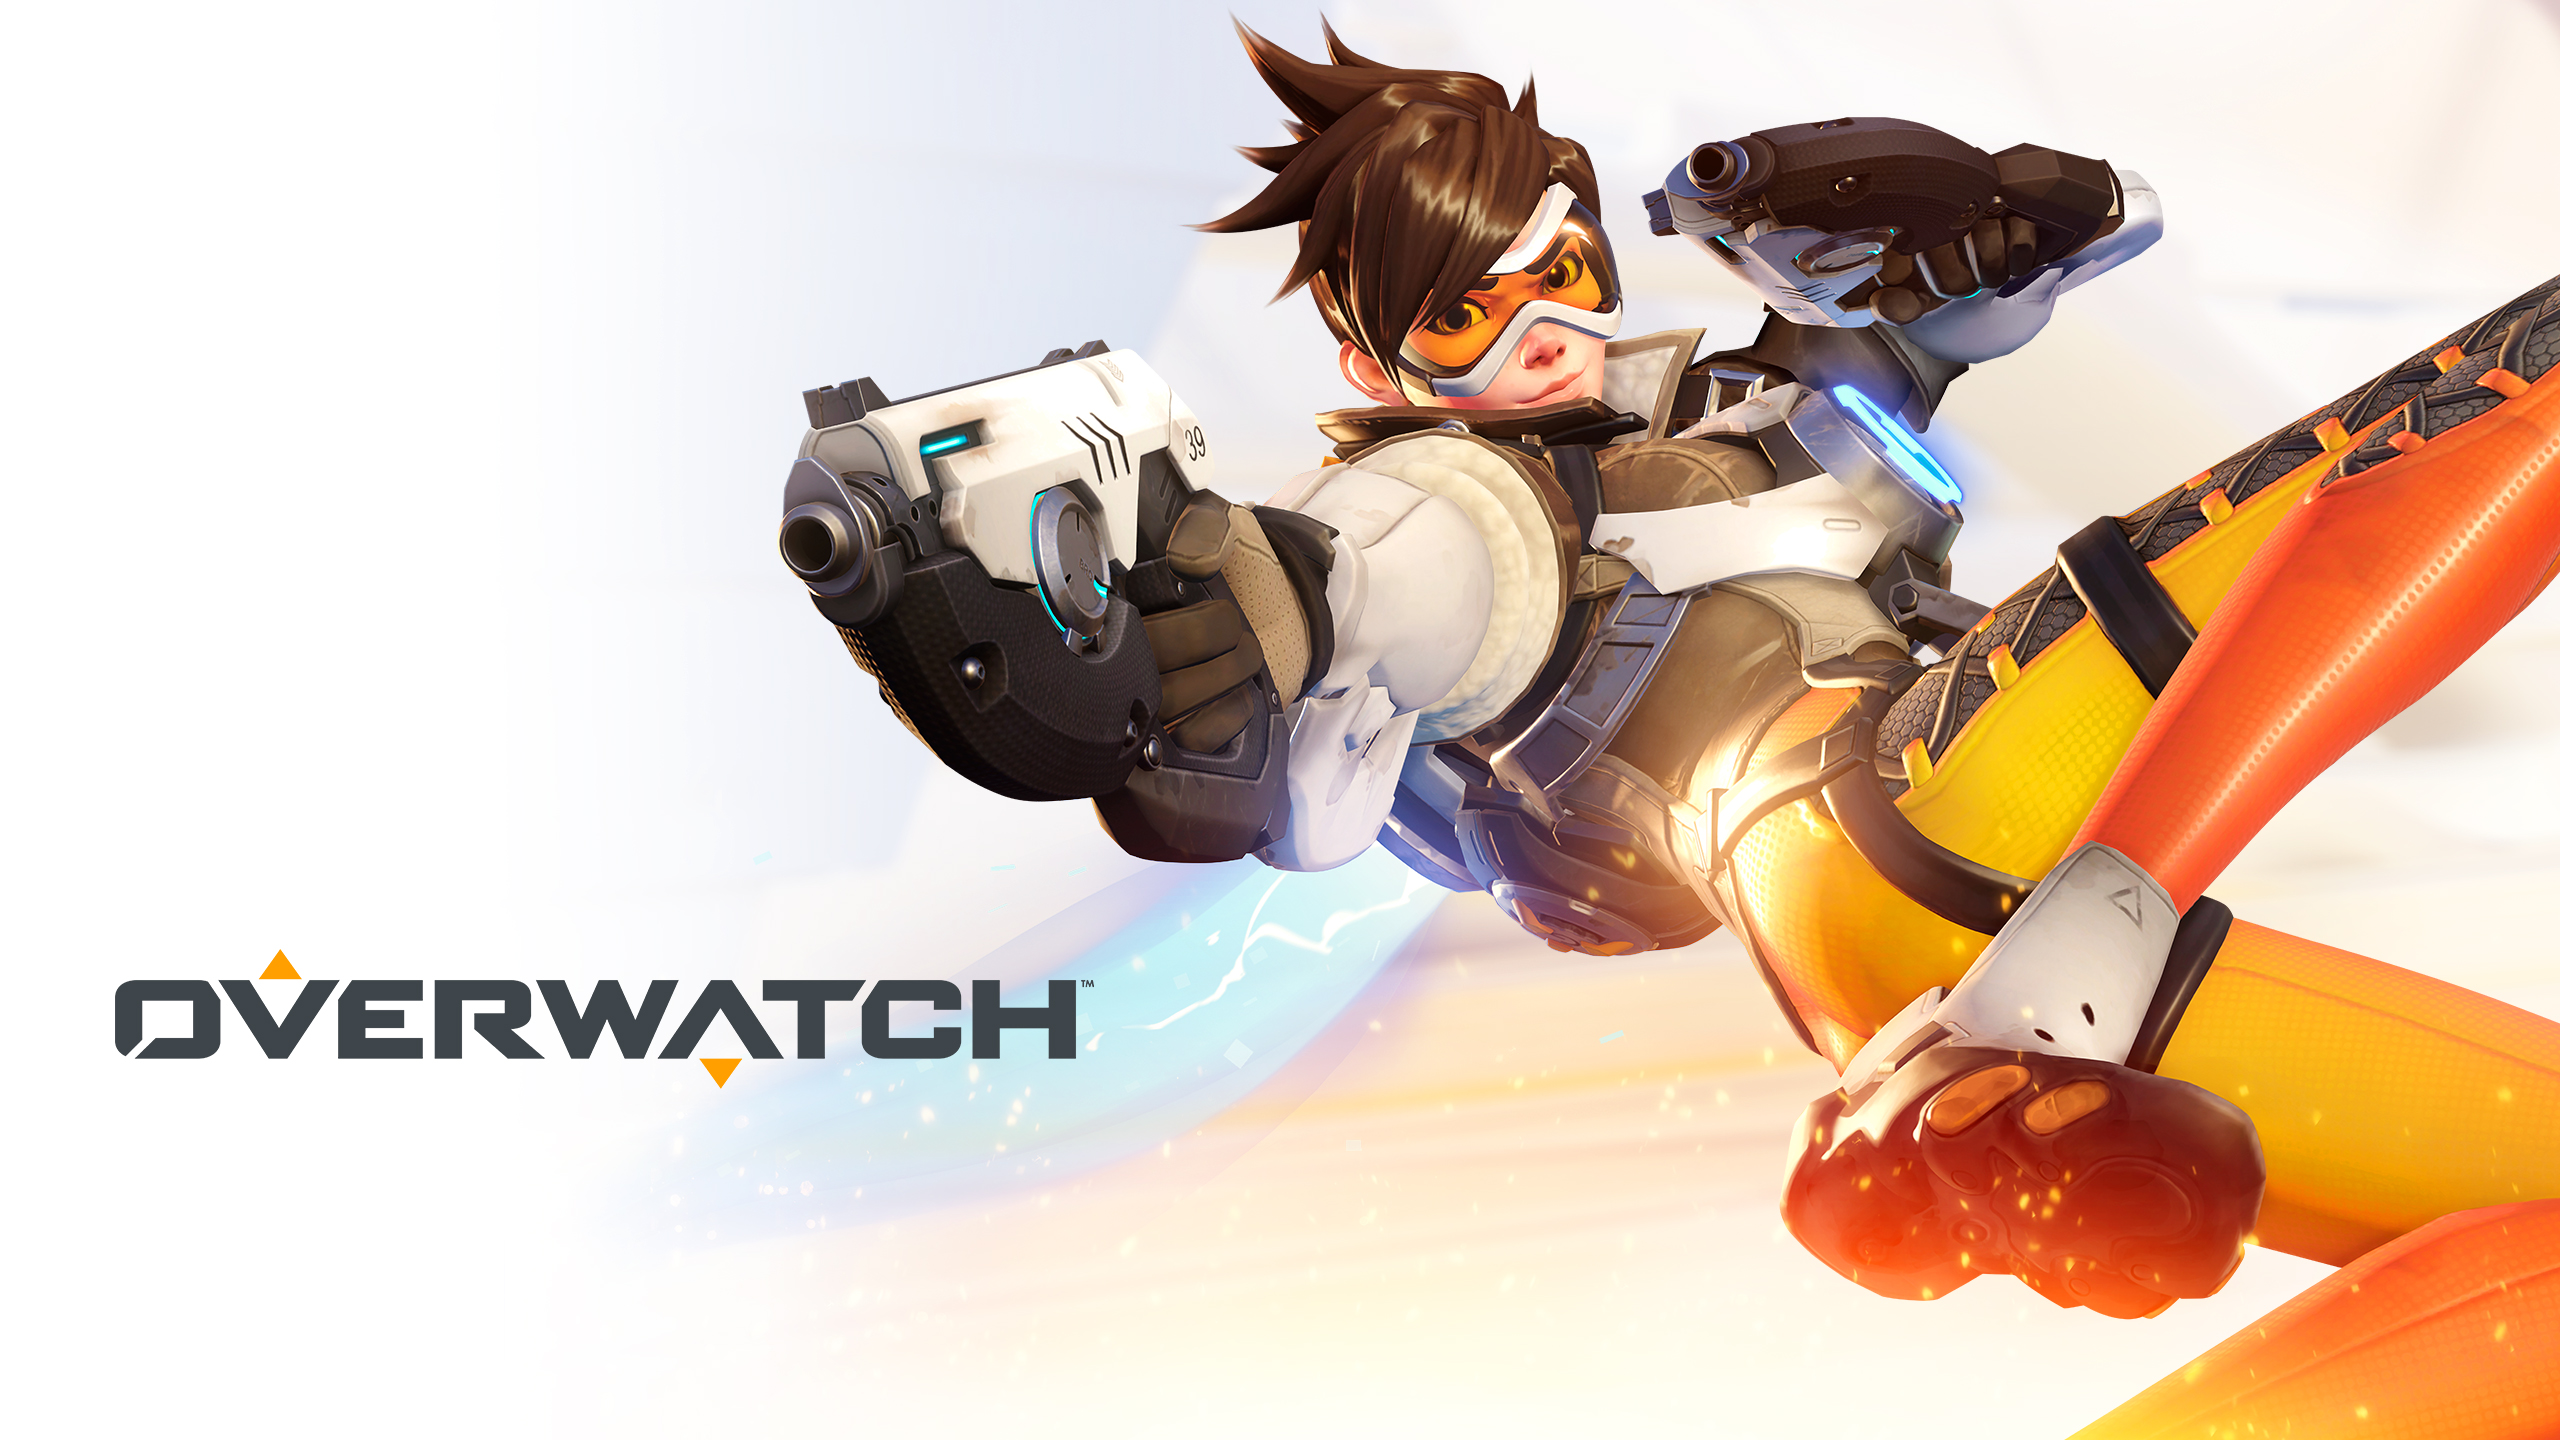 overwatch agent tracer wallpapers - photo #32